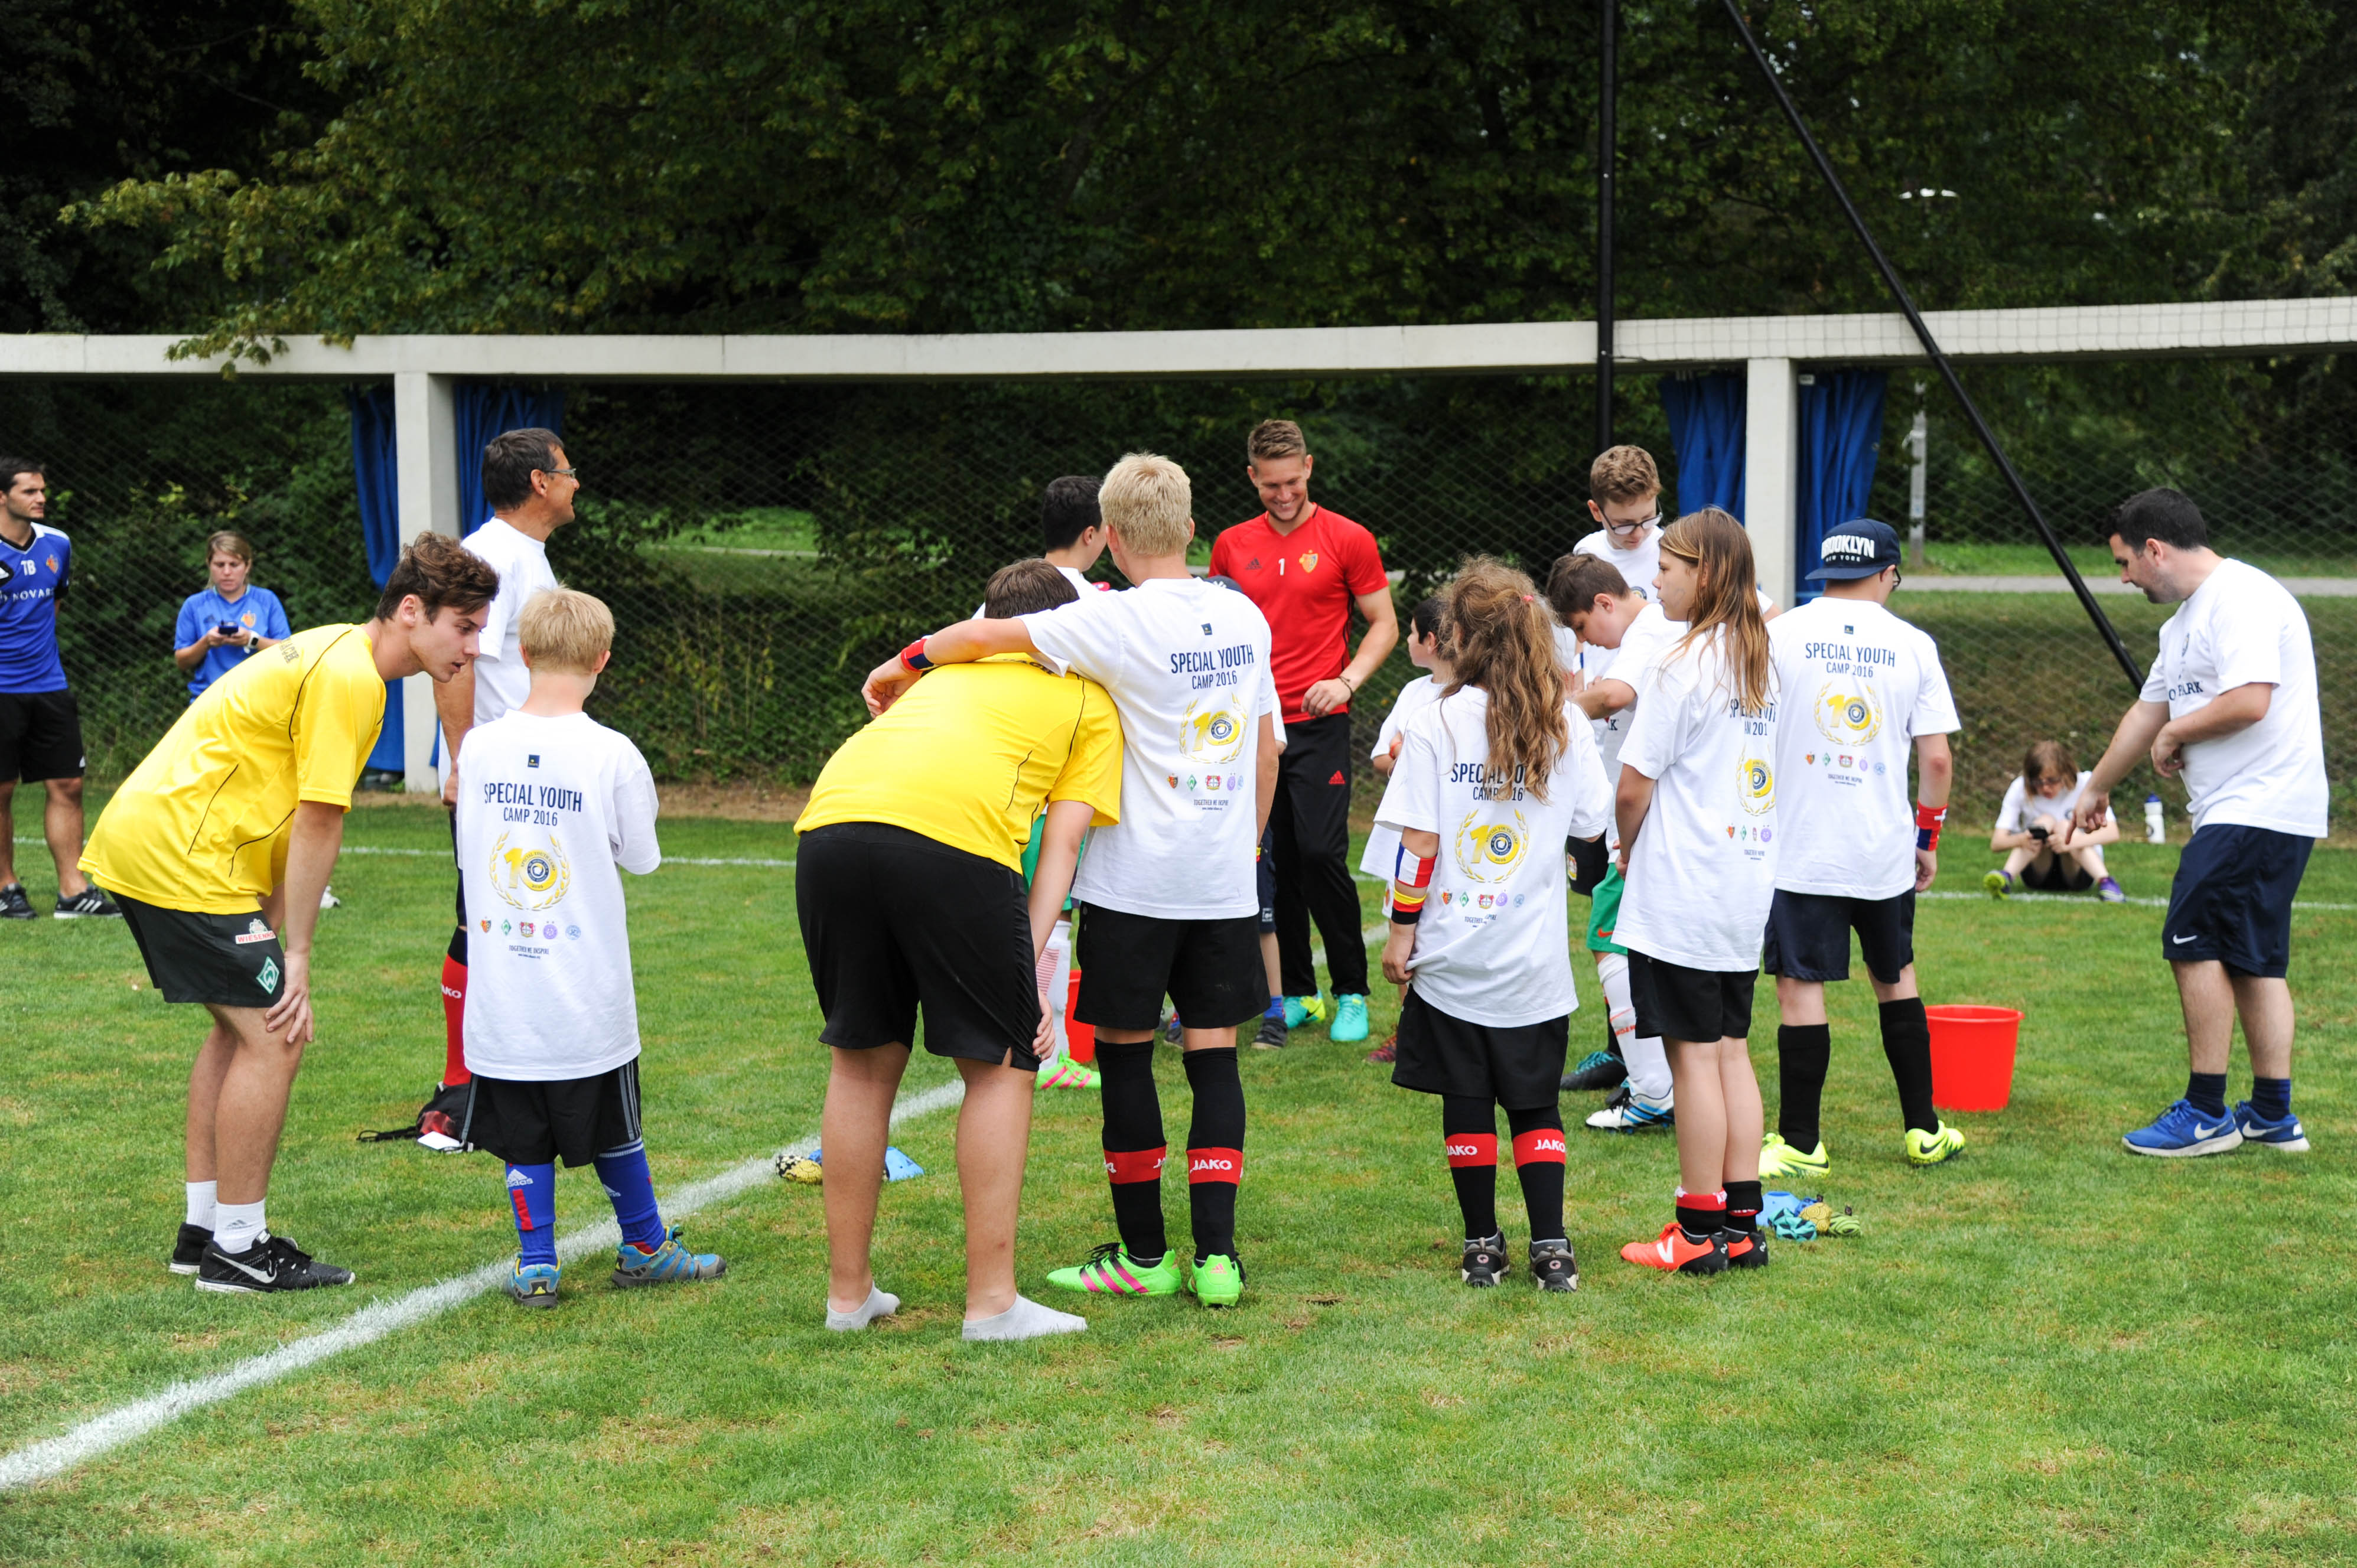 10 Jahre_Special Youth Camp_16-103